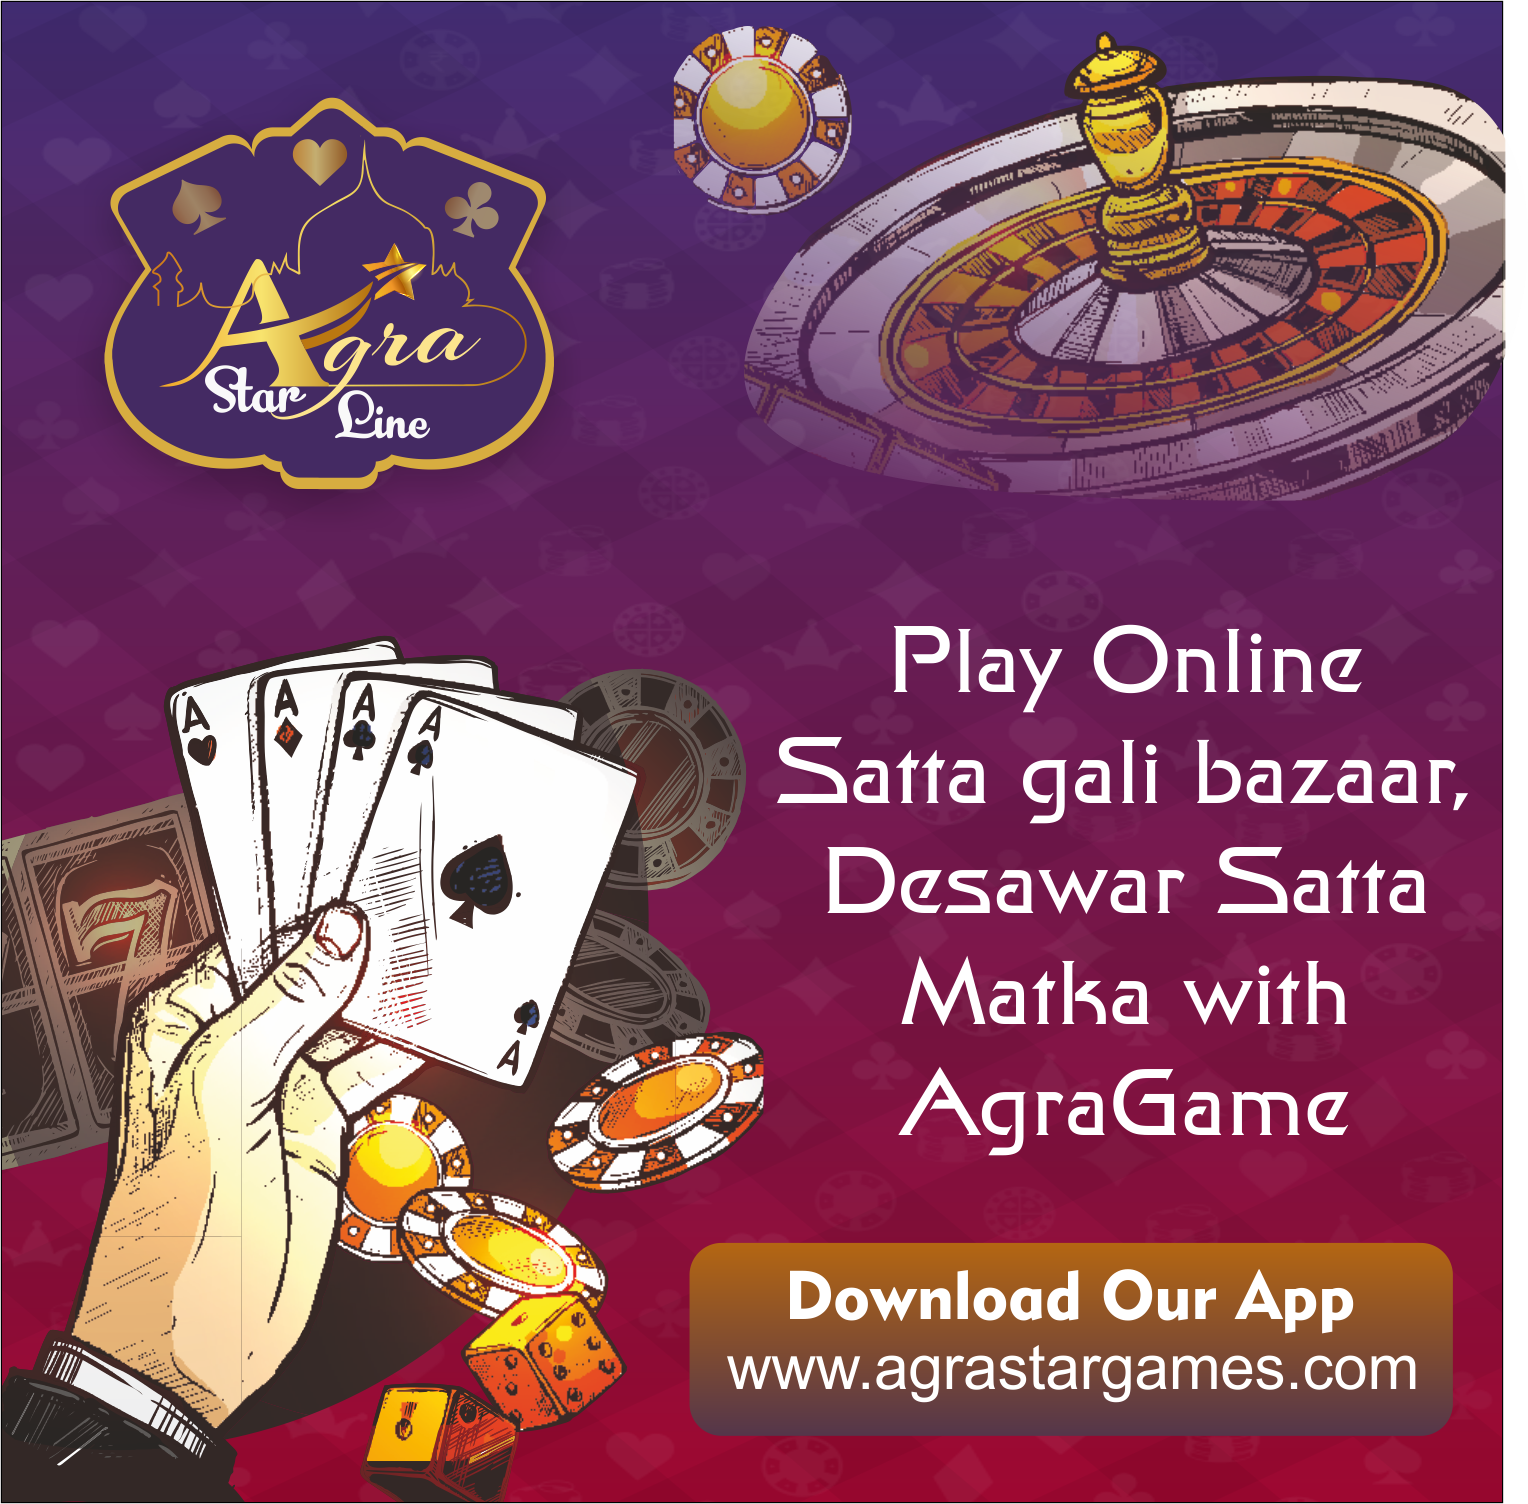 Pin by Agra StarGame on Satta Gali Bazar | Play online, Agra, Play